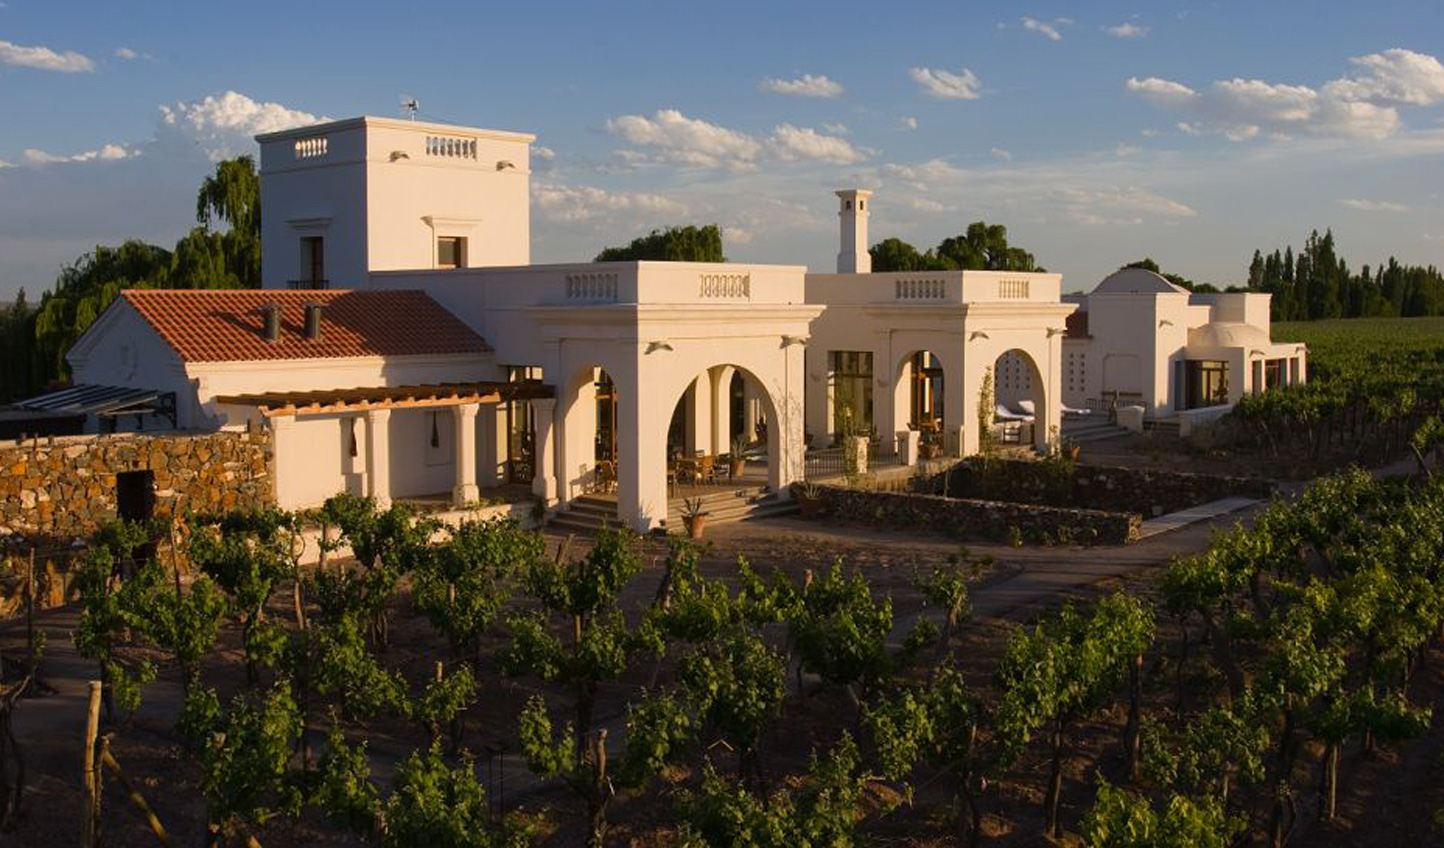 Stay at Cavas Wine Lodge for your second stop in Mendoza